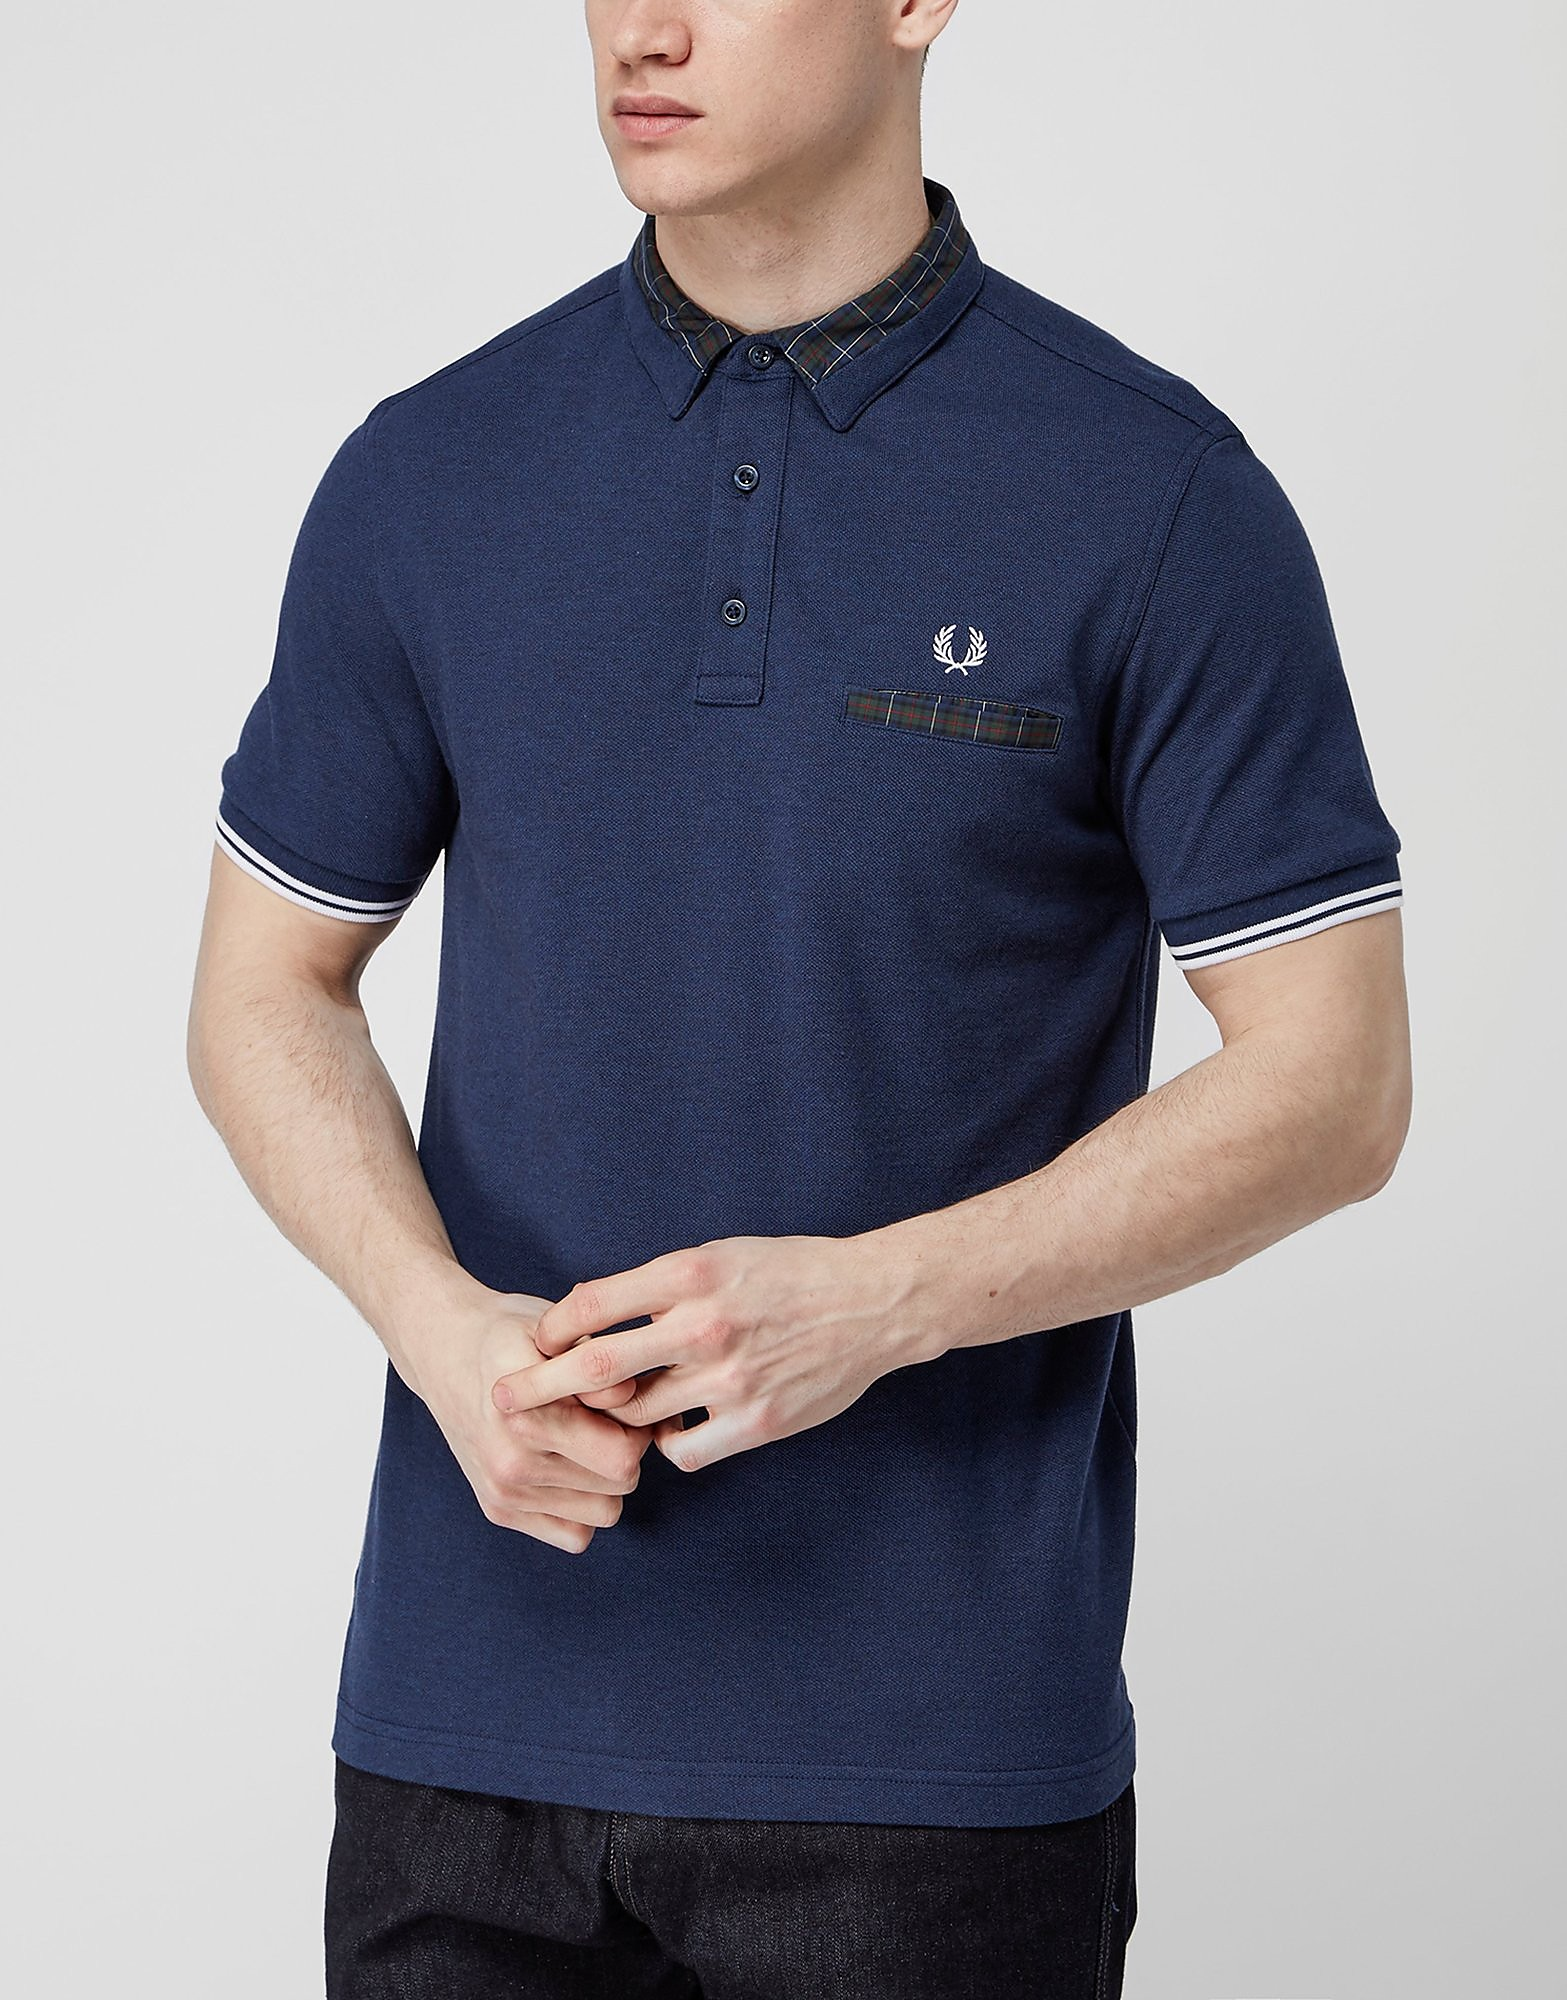 Fred Perry Collar Detail Polo Shirt  Exclusive  Navy Navy